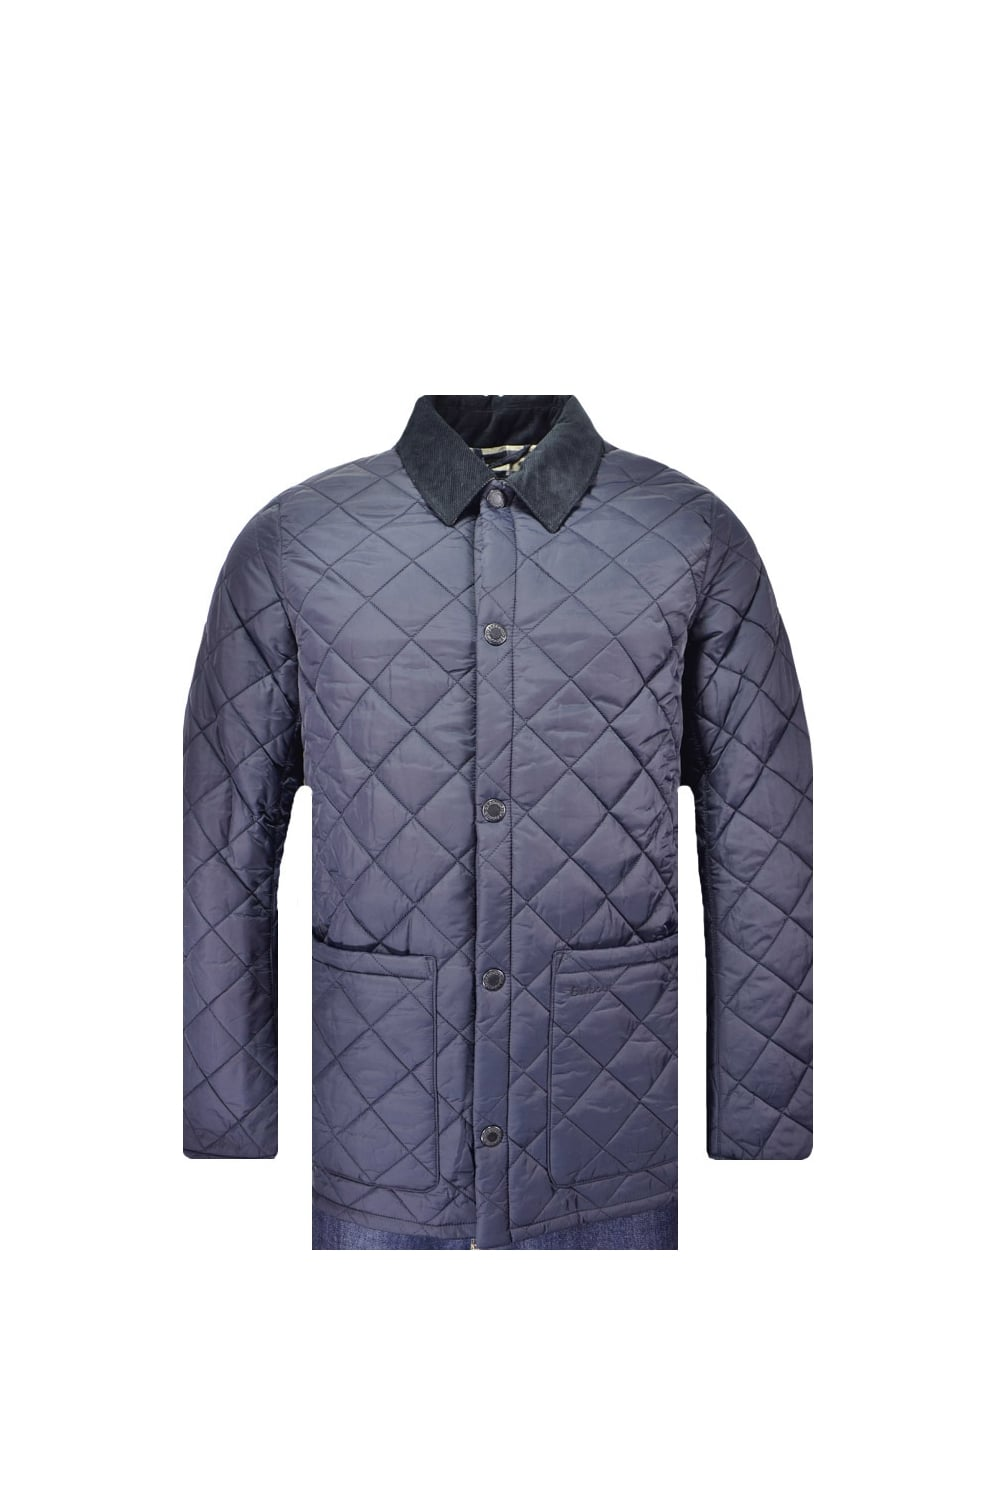 threshold width jacket height s barbour mens quilt forest quilted men canterdale trim